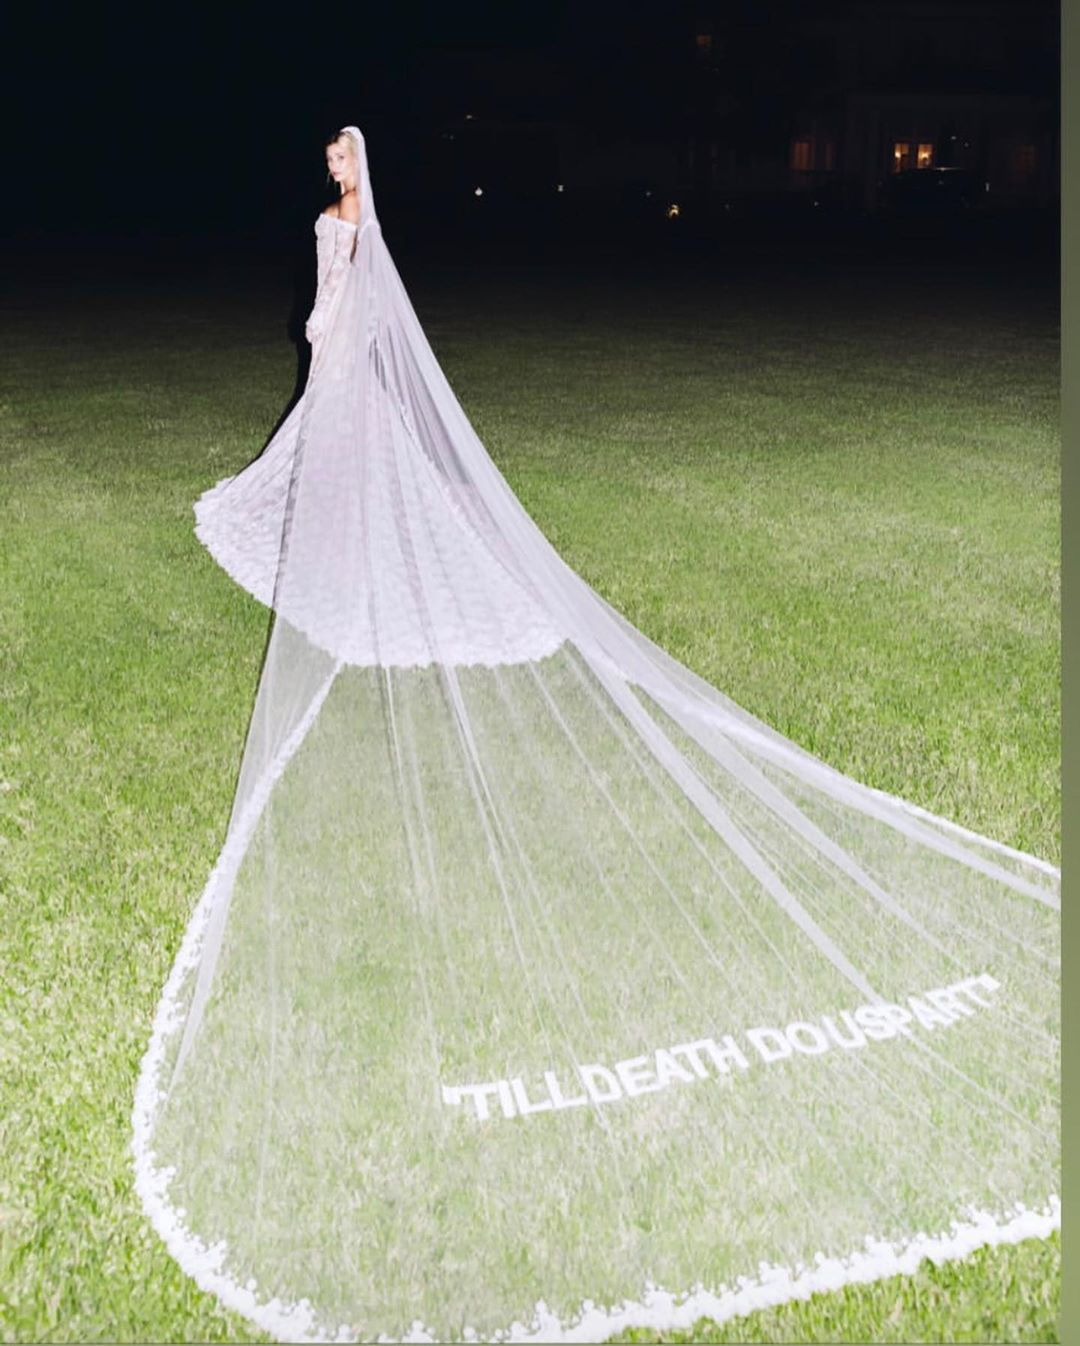 """Photo of Maeve Reilly on Instagram: """""""" TILL DEATH DO US PART """"Just don't get over it … an @off ____ white wedding dress !!!! … I was separated from my … of many custom dresses."""""""